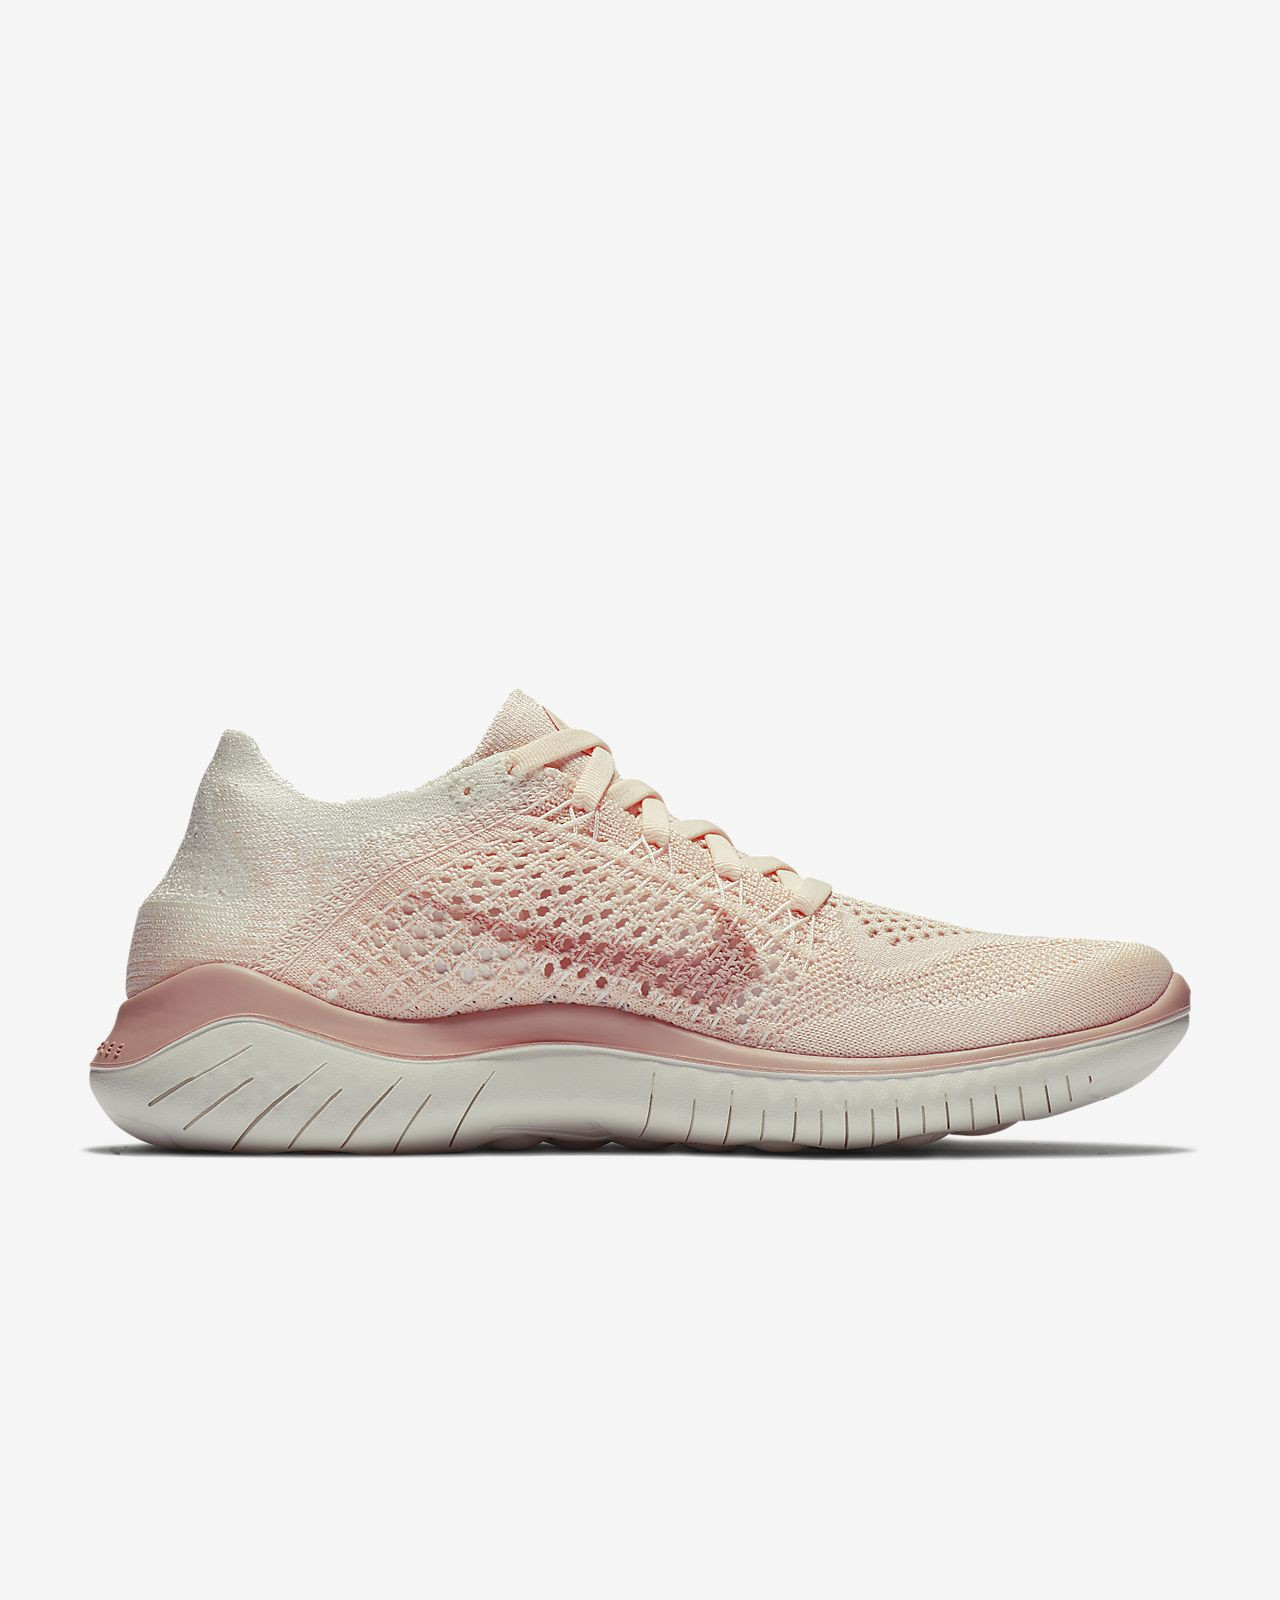 the latest e31dc 1b9f8 Nike Free Rn Flyknit 2018 Womens Running Shoe - 11.5 Beige